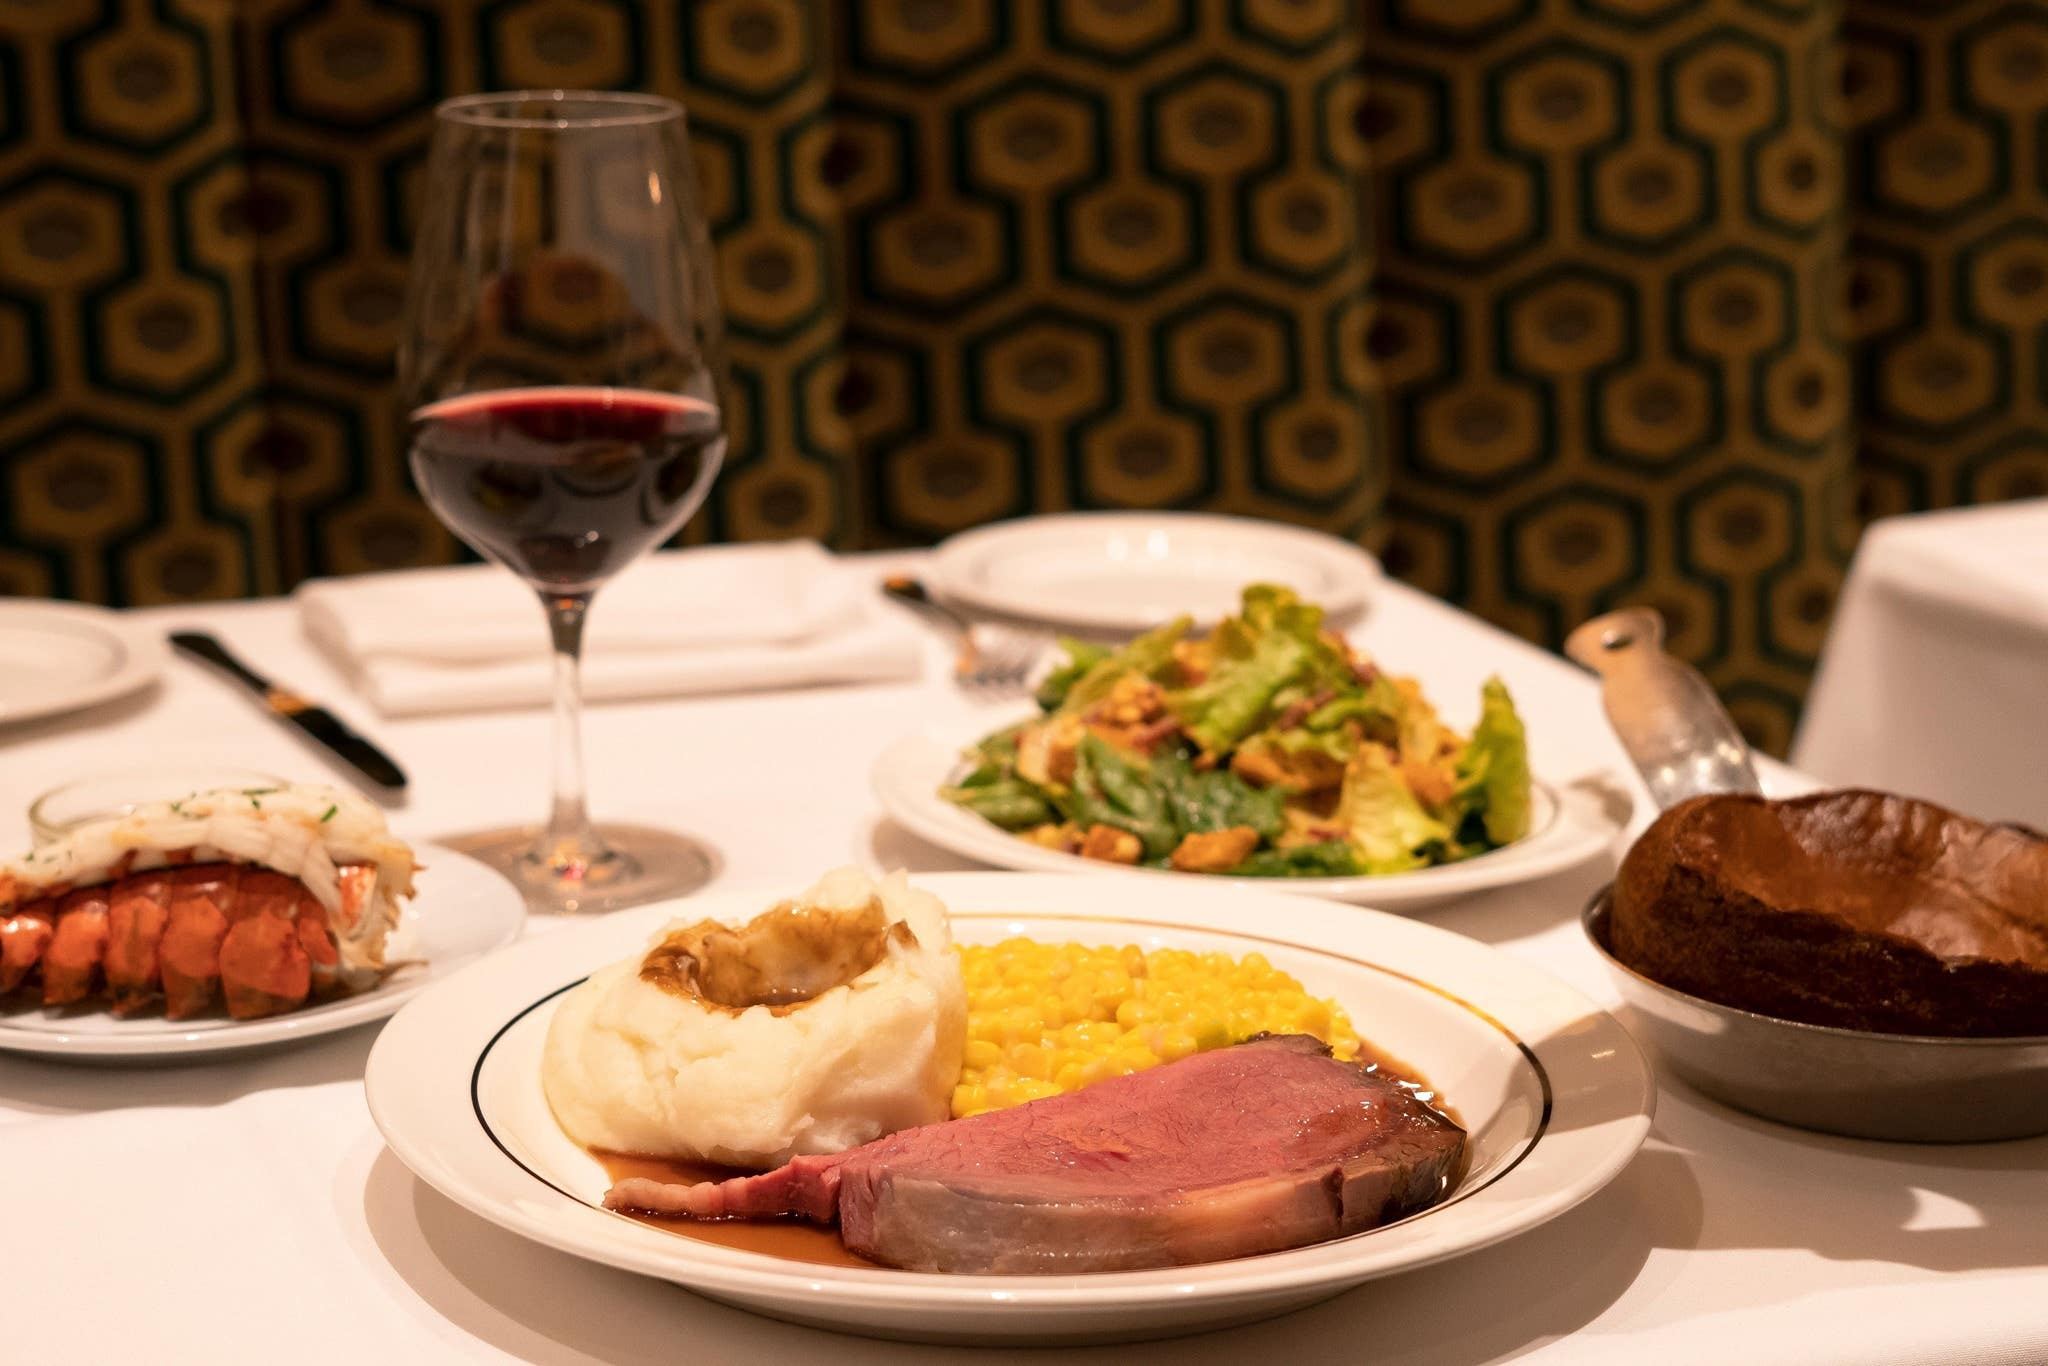 California Cut and lobster tail at Lawry's The Prime Rib in Beverly Hills